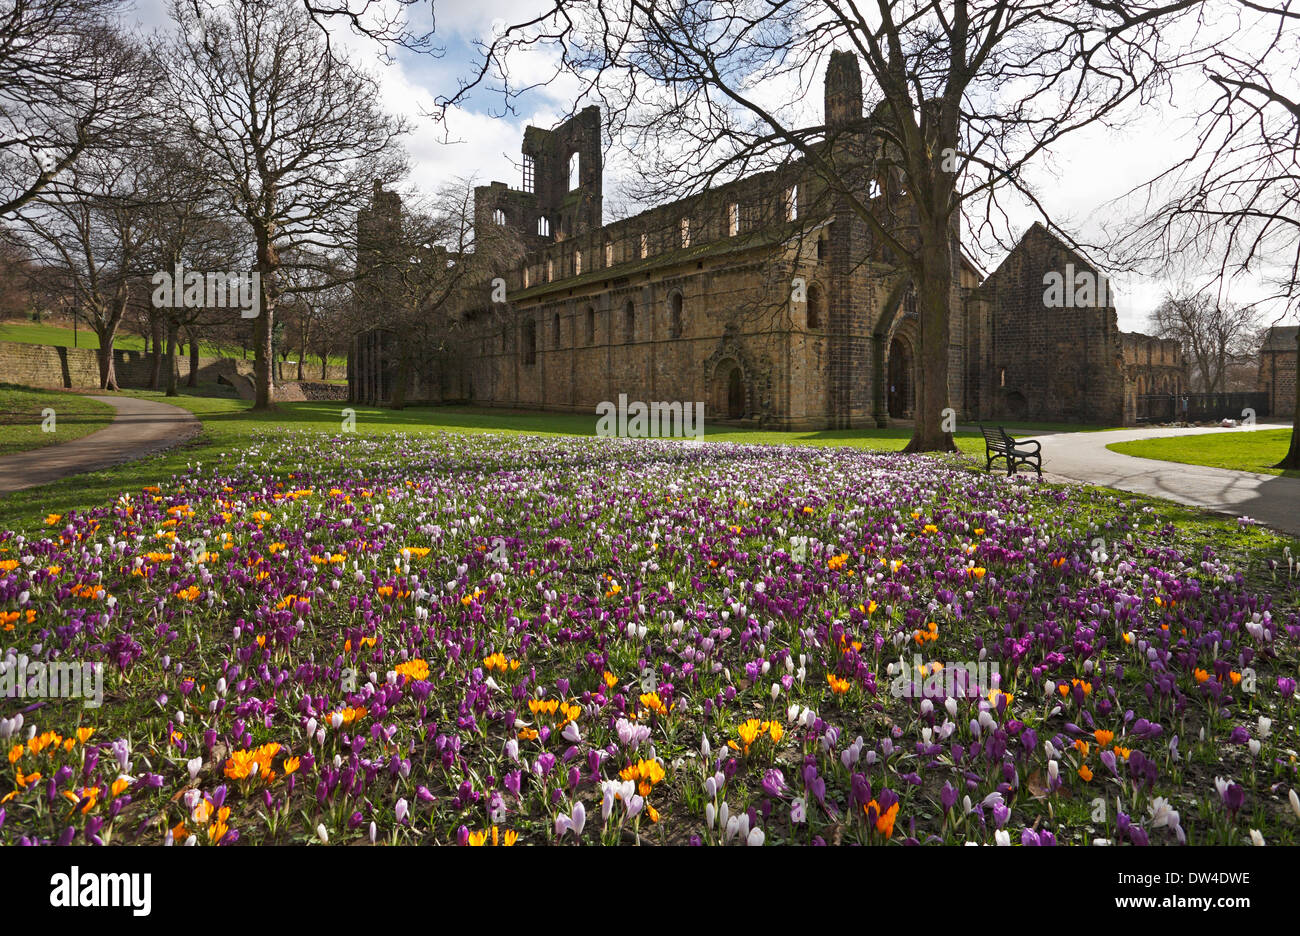 Crocuses in the grounds of Kirkstall Abbey, Leeds, West Yorkshire, England, UK. - Stock Image